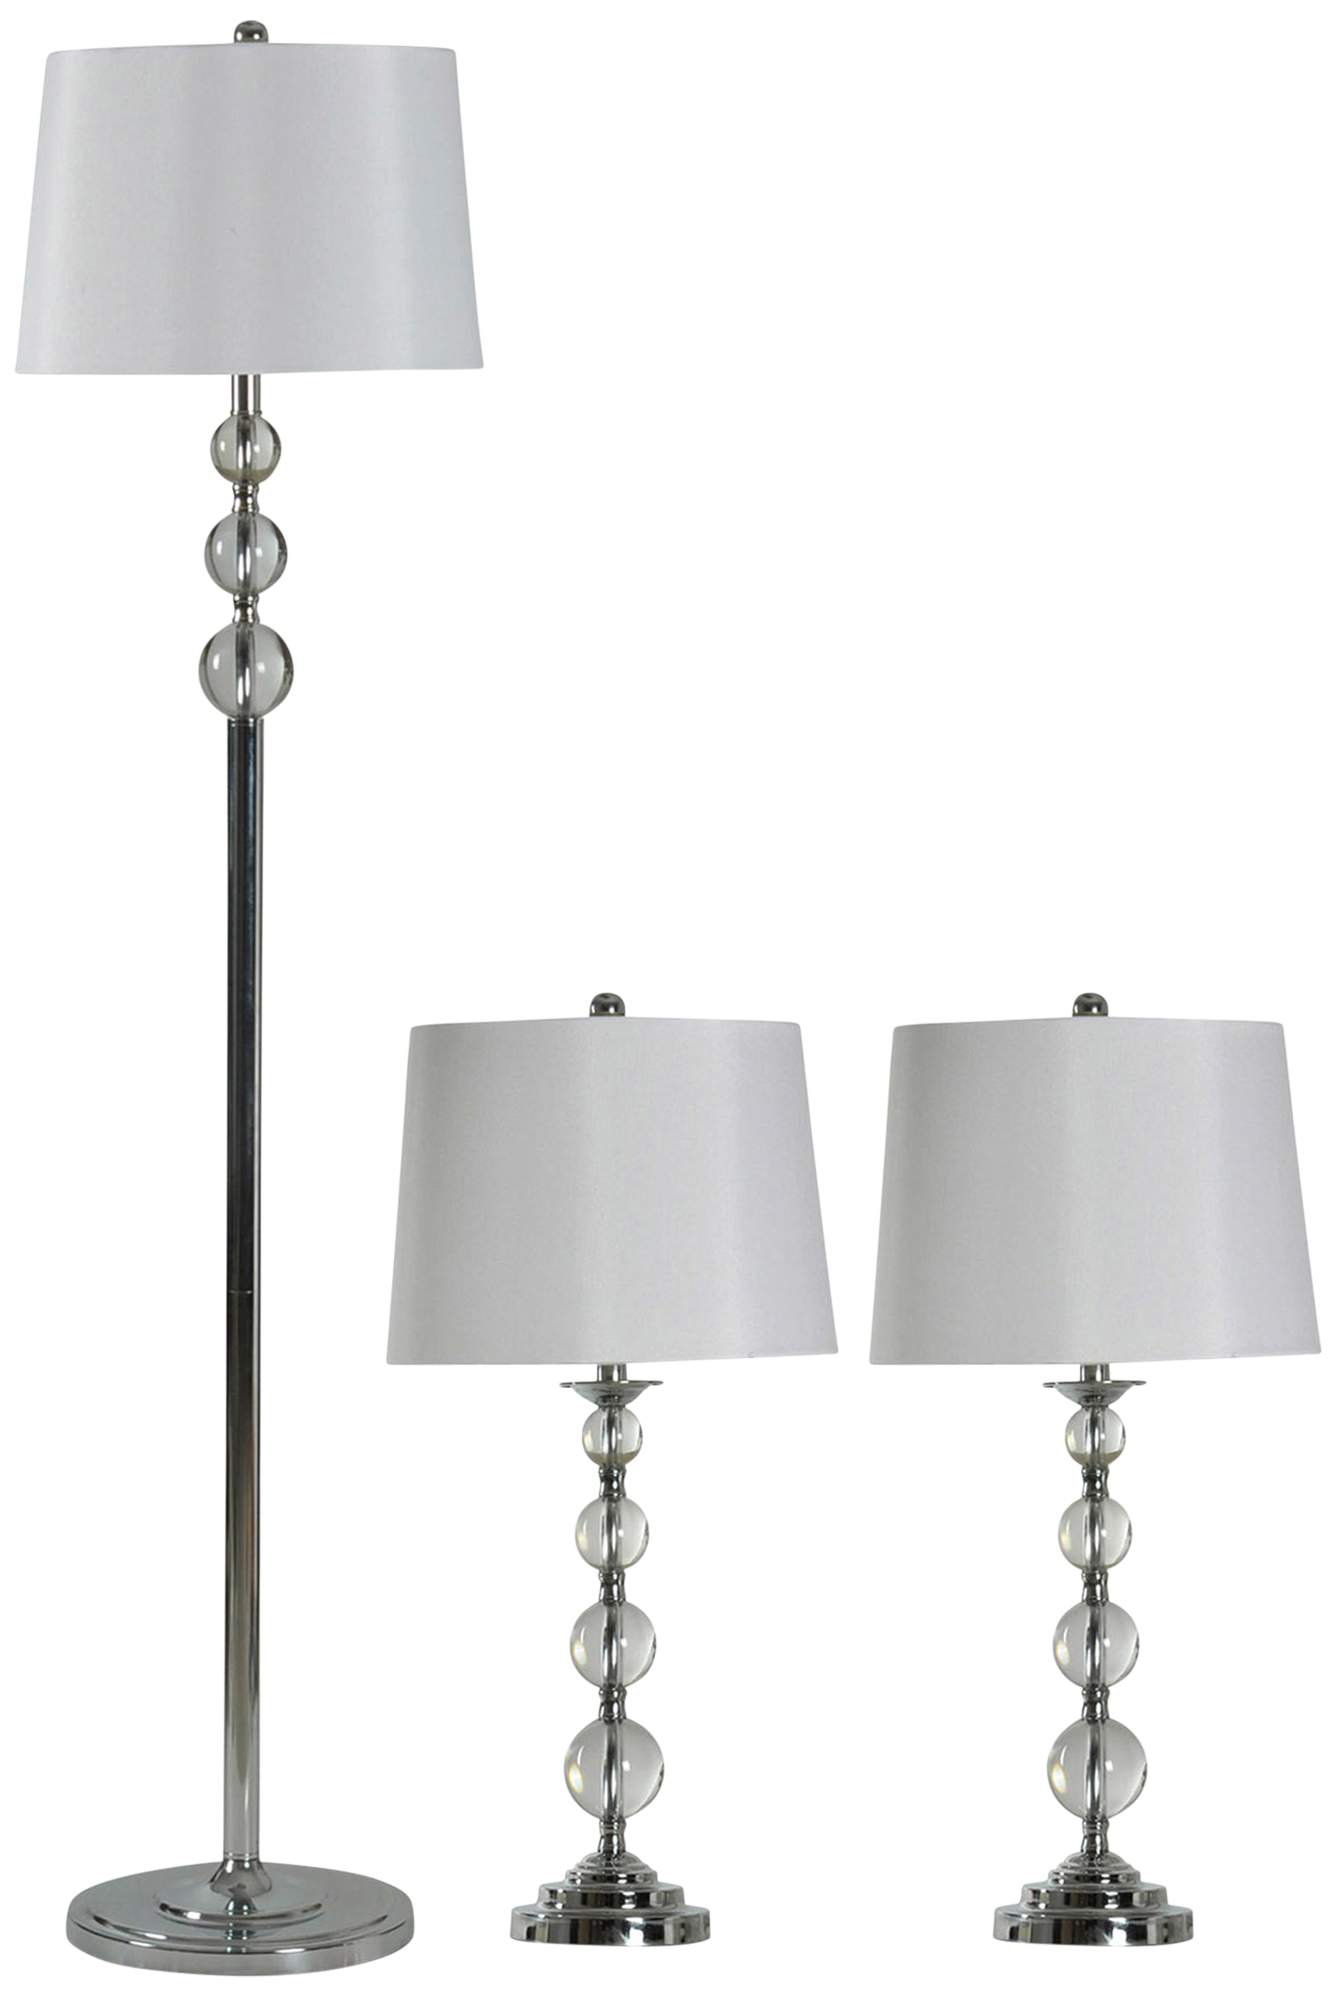 Floor Lamps And Table Lamps Info Guide @house2homegoods.net